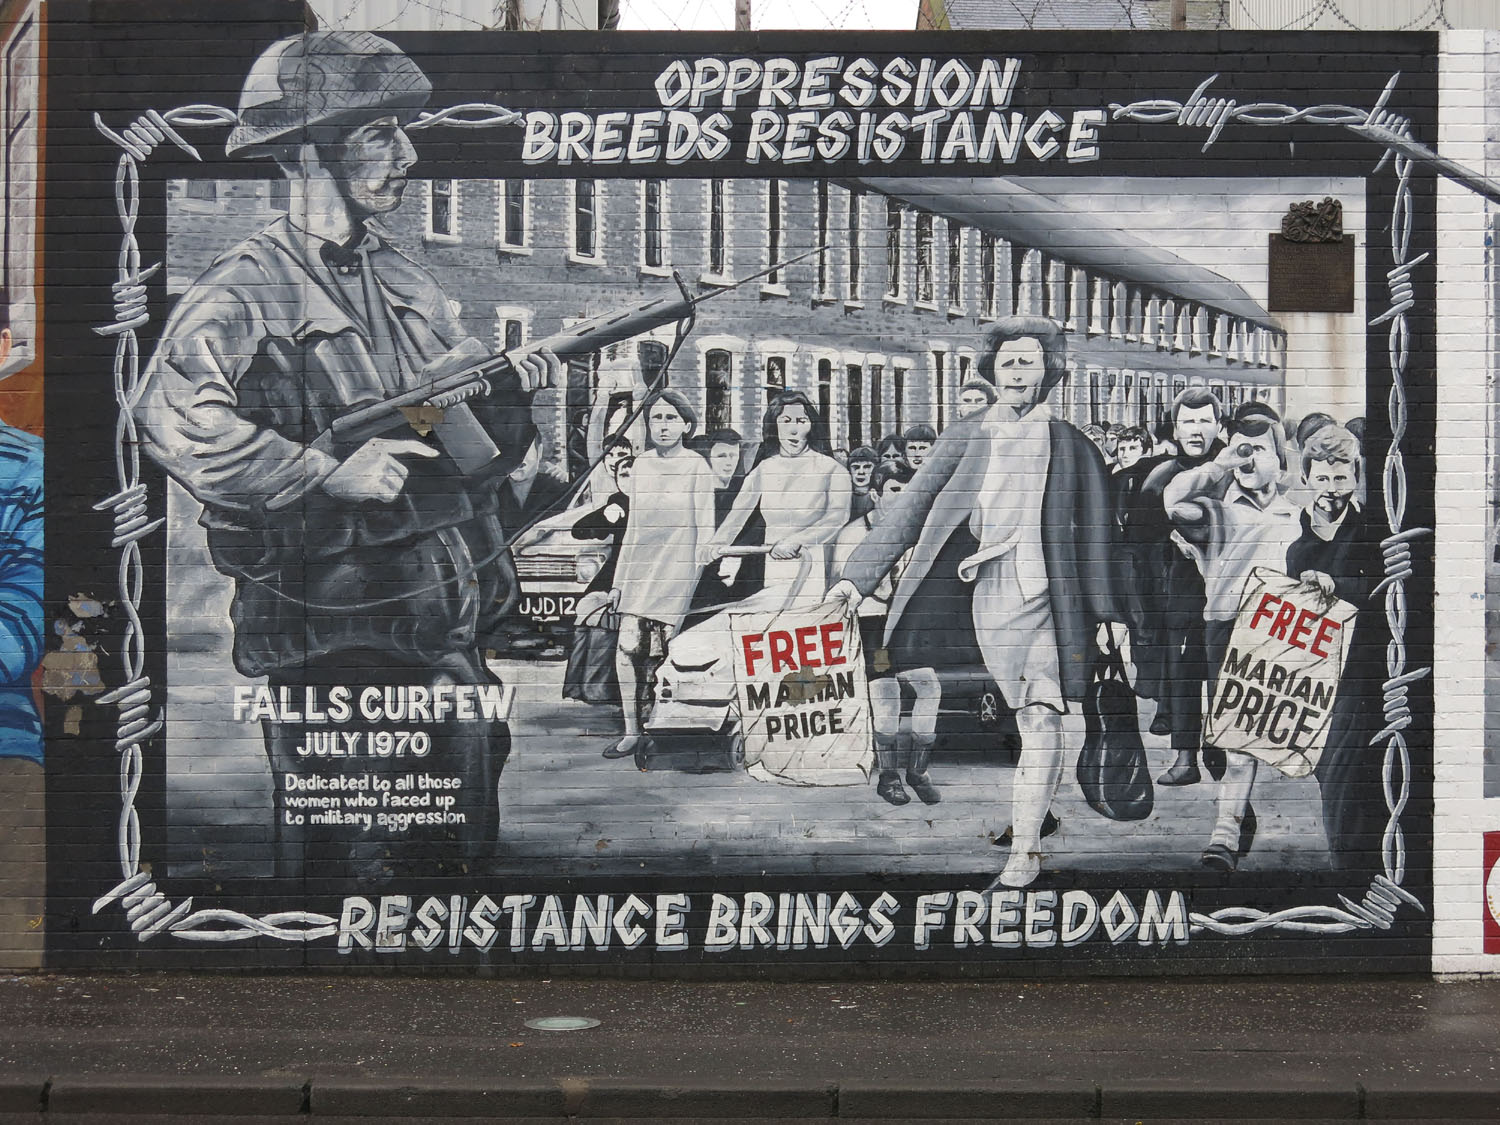 Northern-Ireland-Belfast-The-Troubles-Republican-Mural-Marian-Price